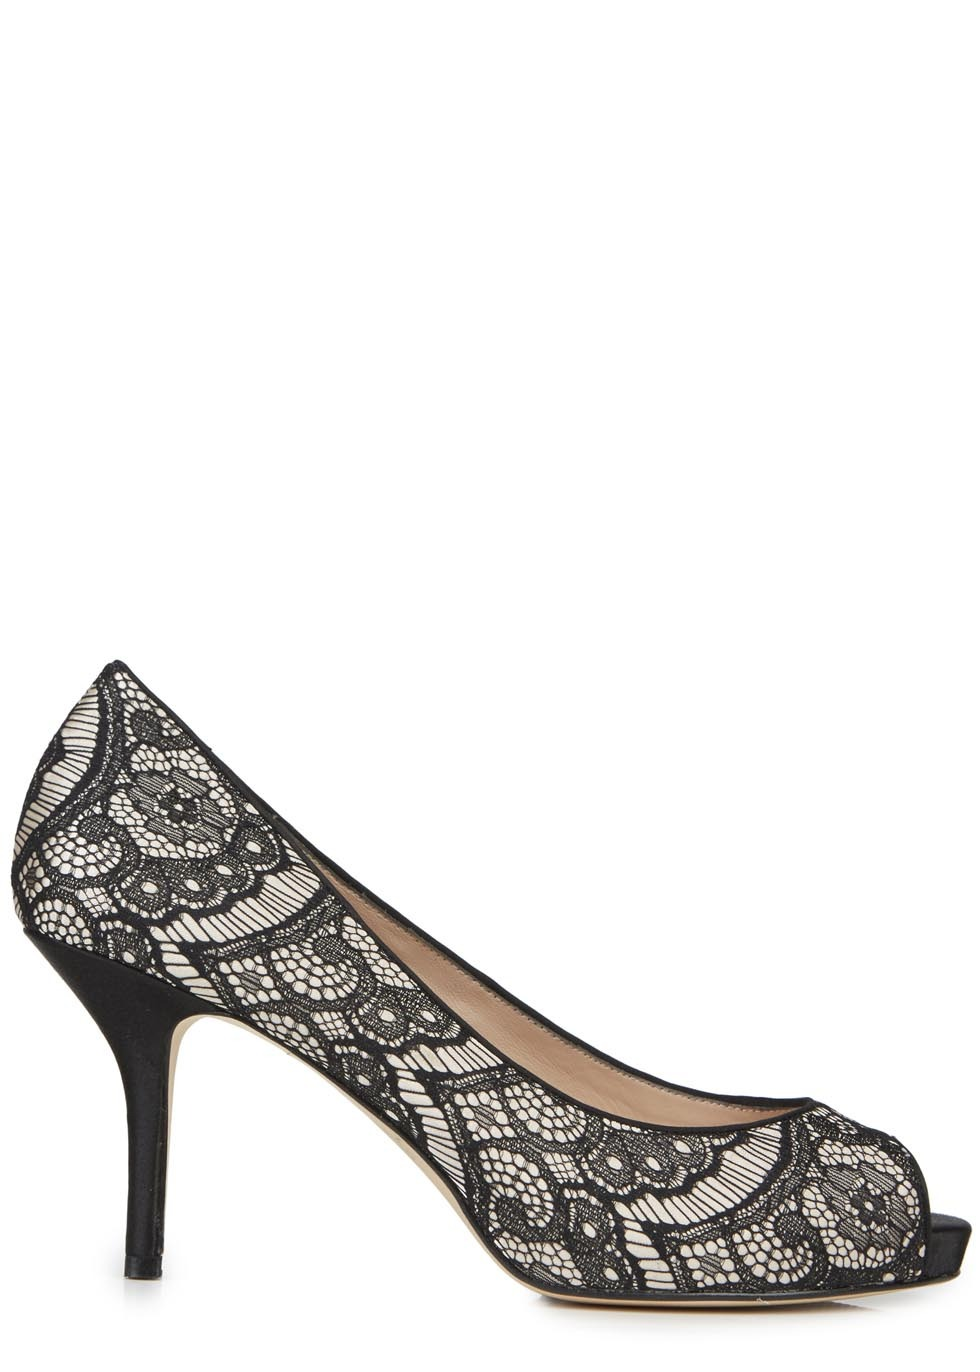 Chiswick Monochrome Satin And Lace Pumps Size - secondary colour: ivory/cream; predominant colour: black; occasions: occasion; material: leather; heel height: high; heel: stiletto; toe: open toe/peeptoe; style: courts; finish: plain; pattern: patterned/print; embellishment: lace; season: s/s 2014